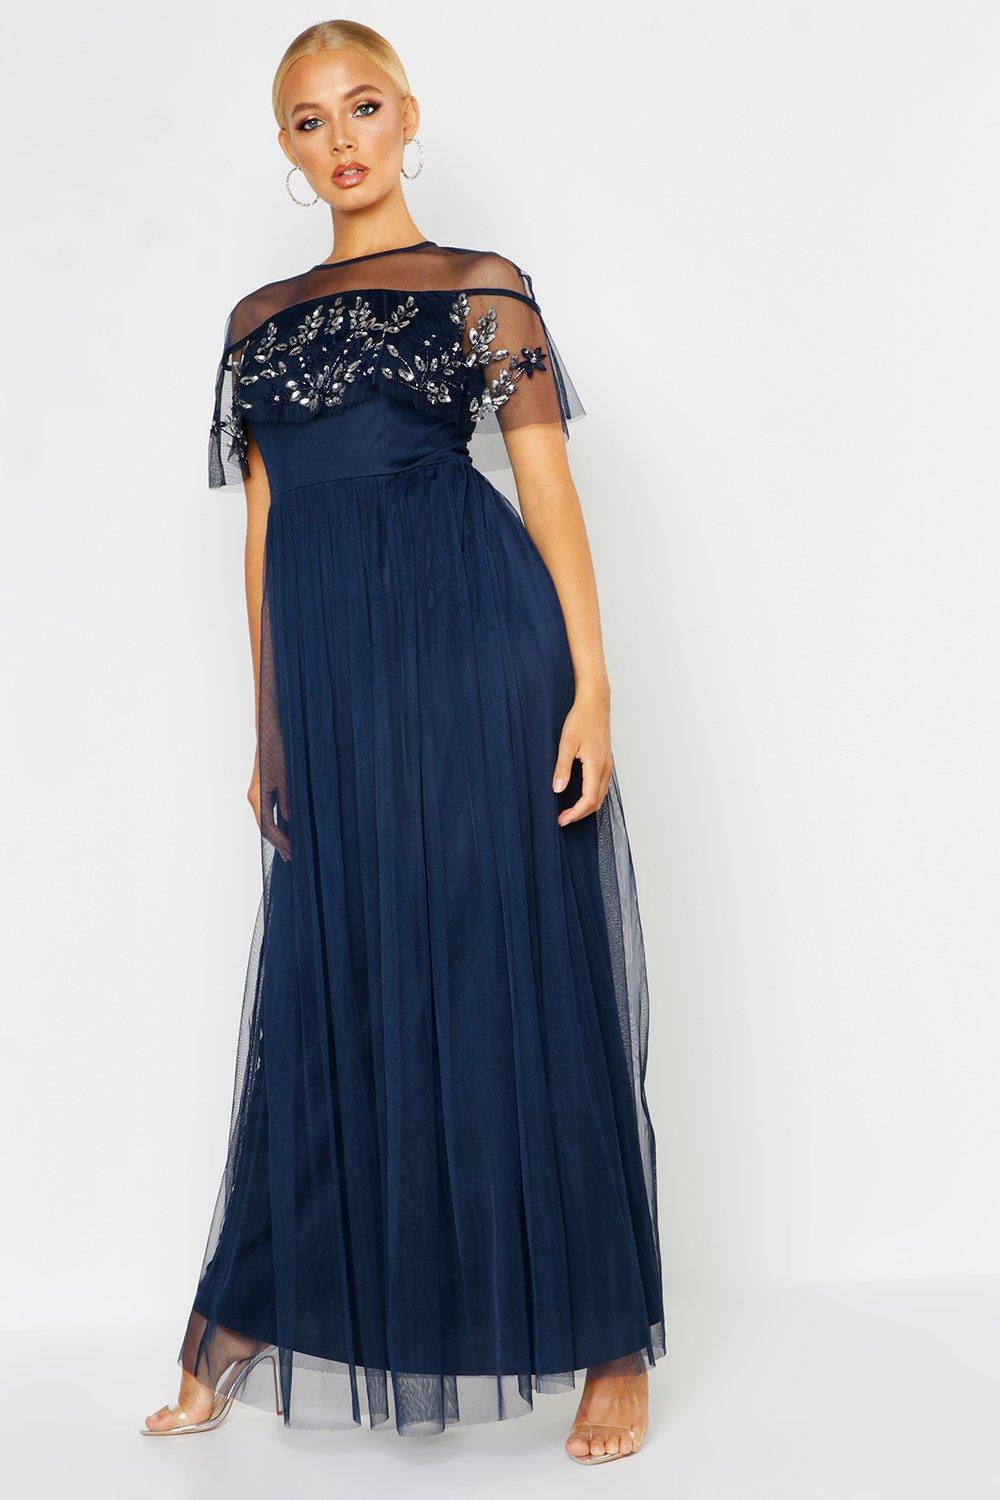 1940s Evening, Prom, Party, Formal, Ball Gowns Embellished Cape Skater Maxi Dress  AT vintagedancer.com